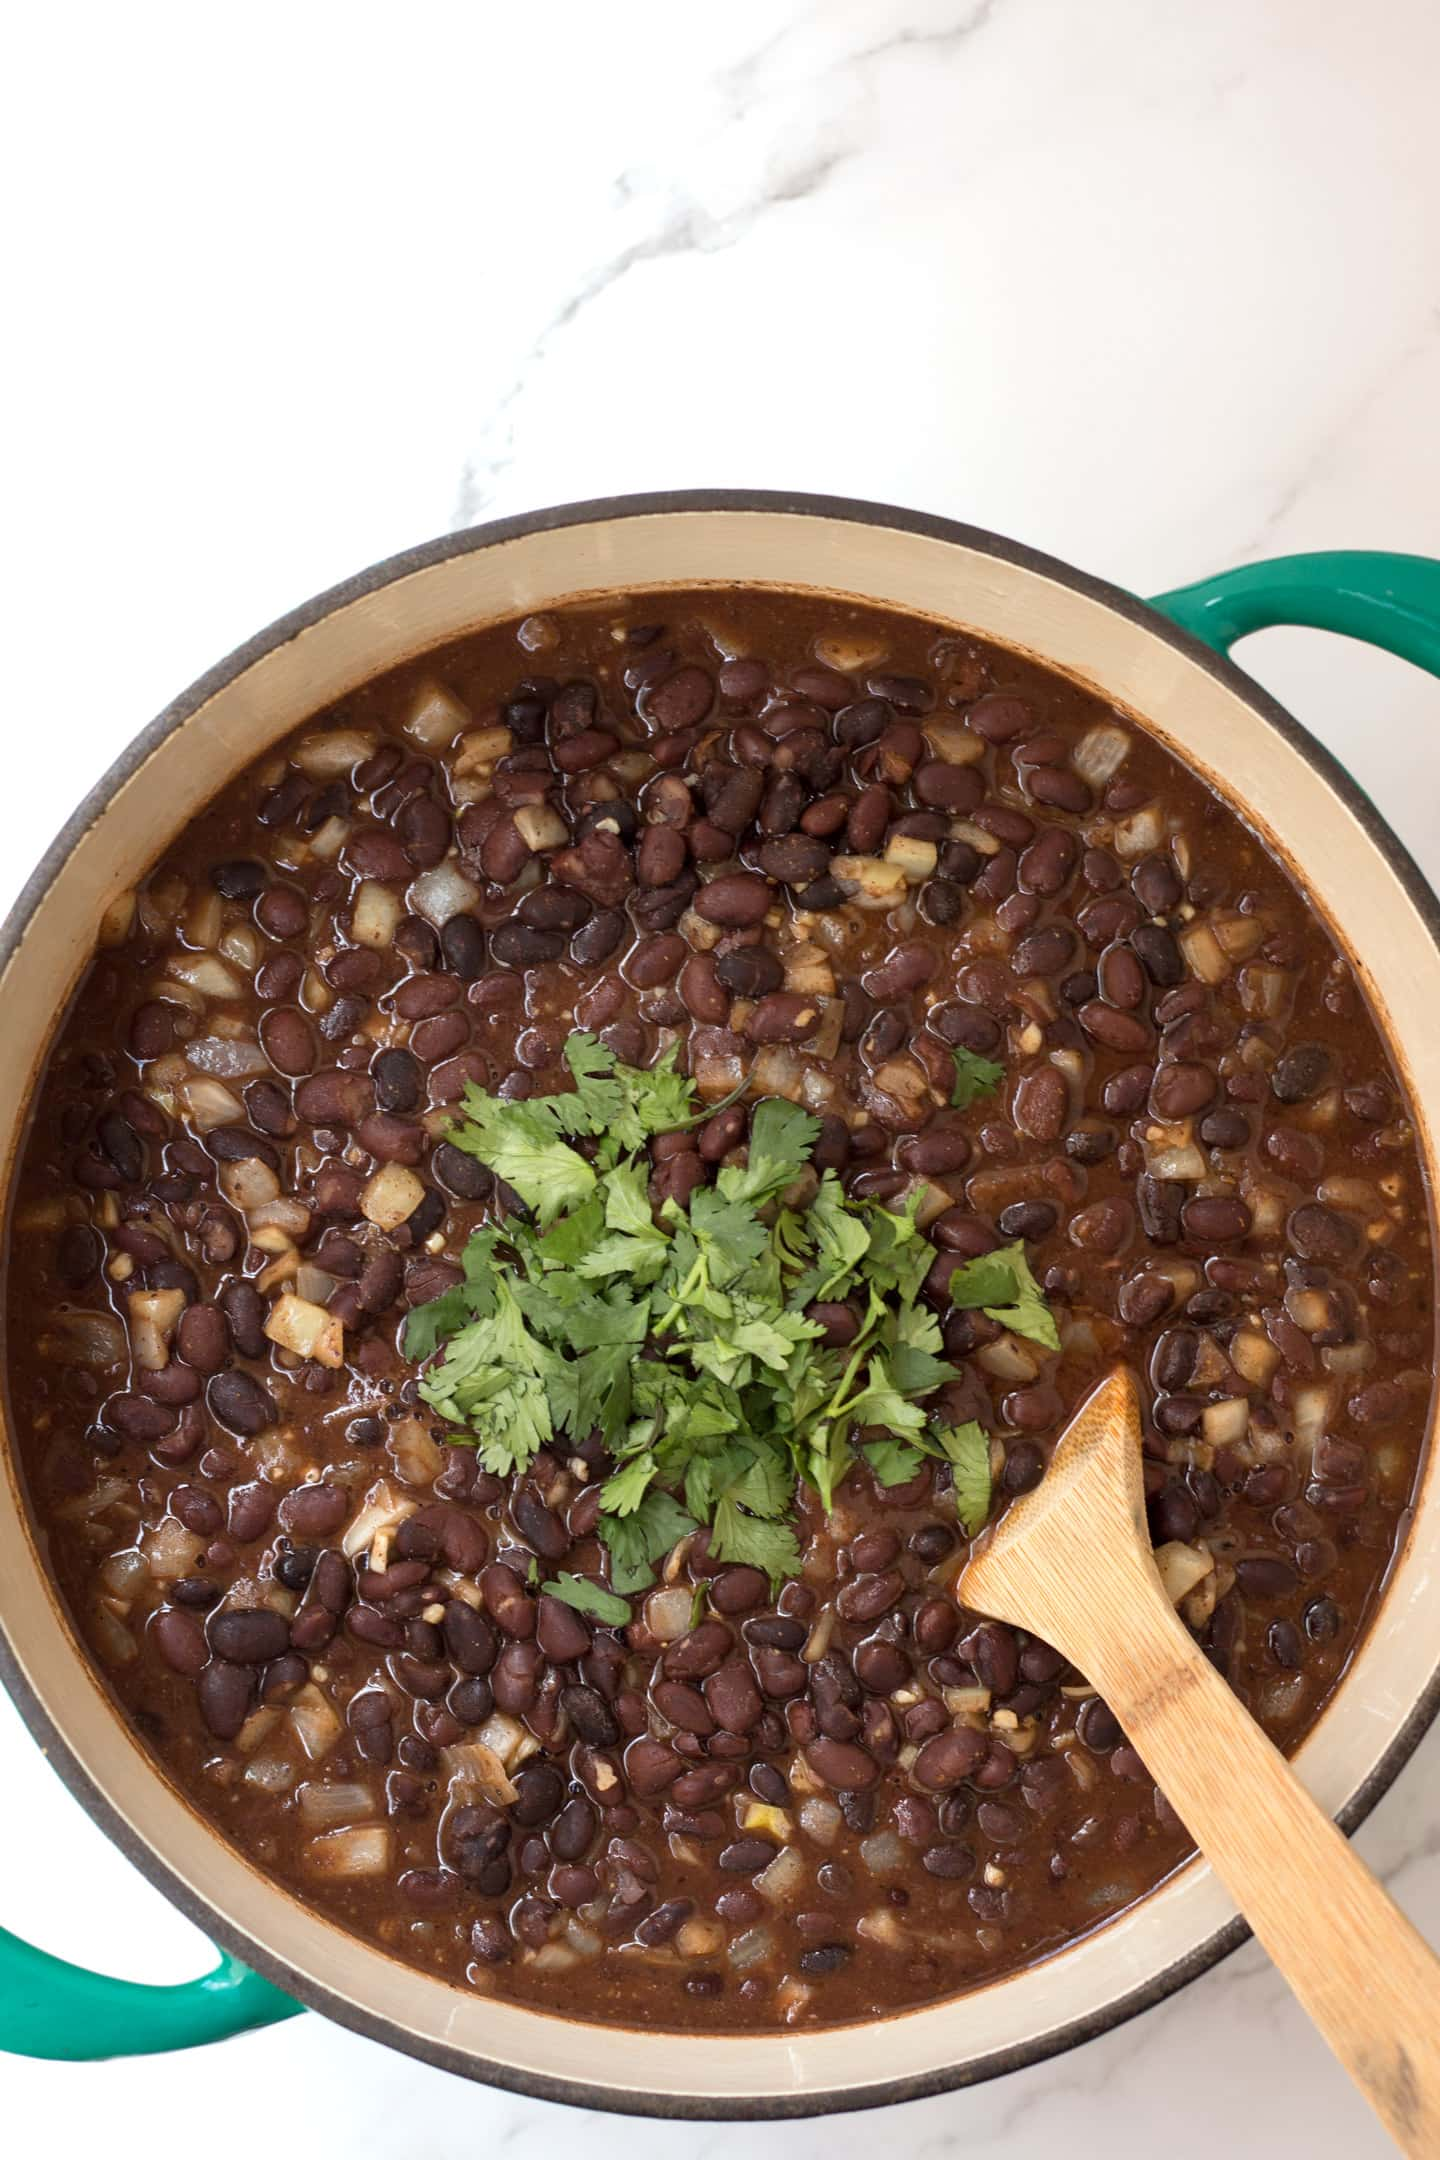 Pot of black beans with cilantro garnish.